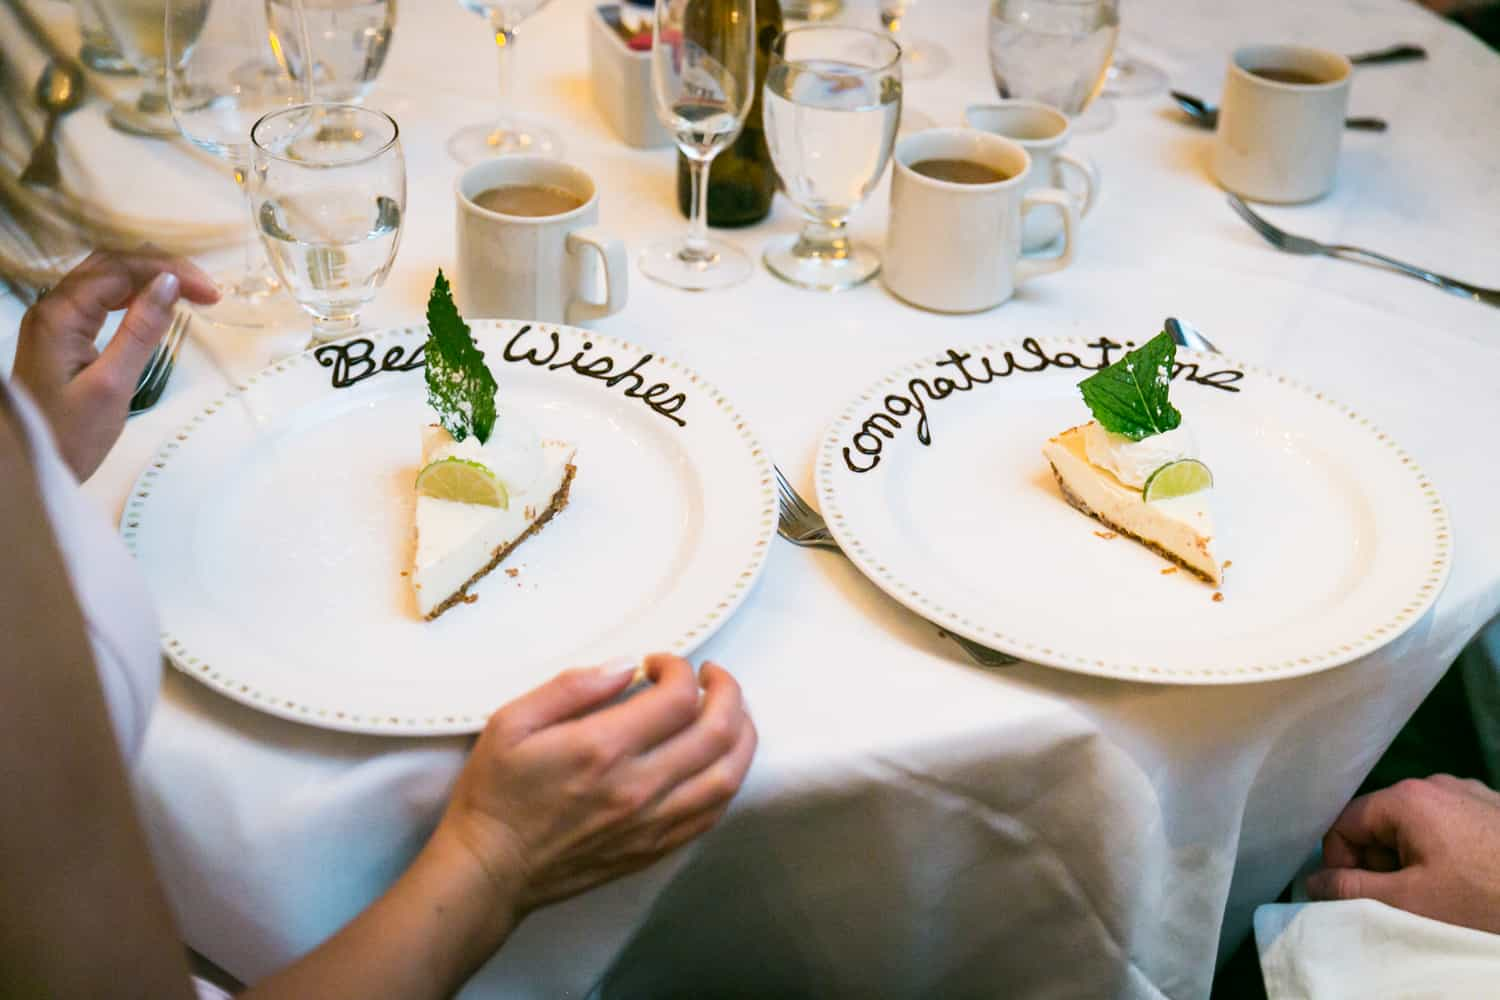 Two plates of key lime pie with writing in chocolate